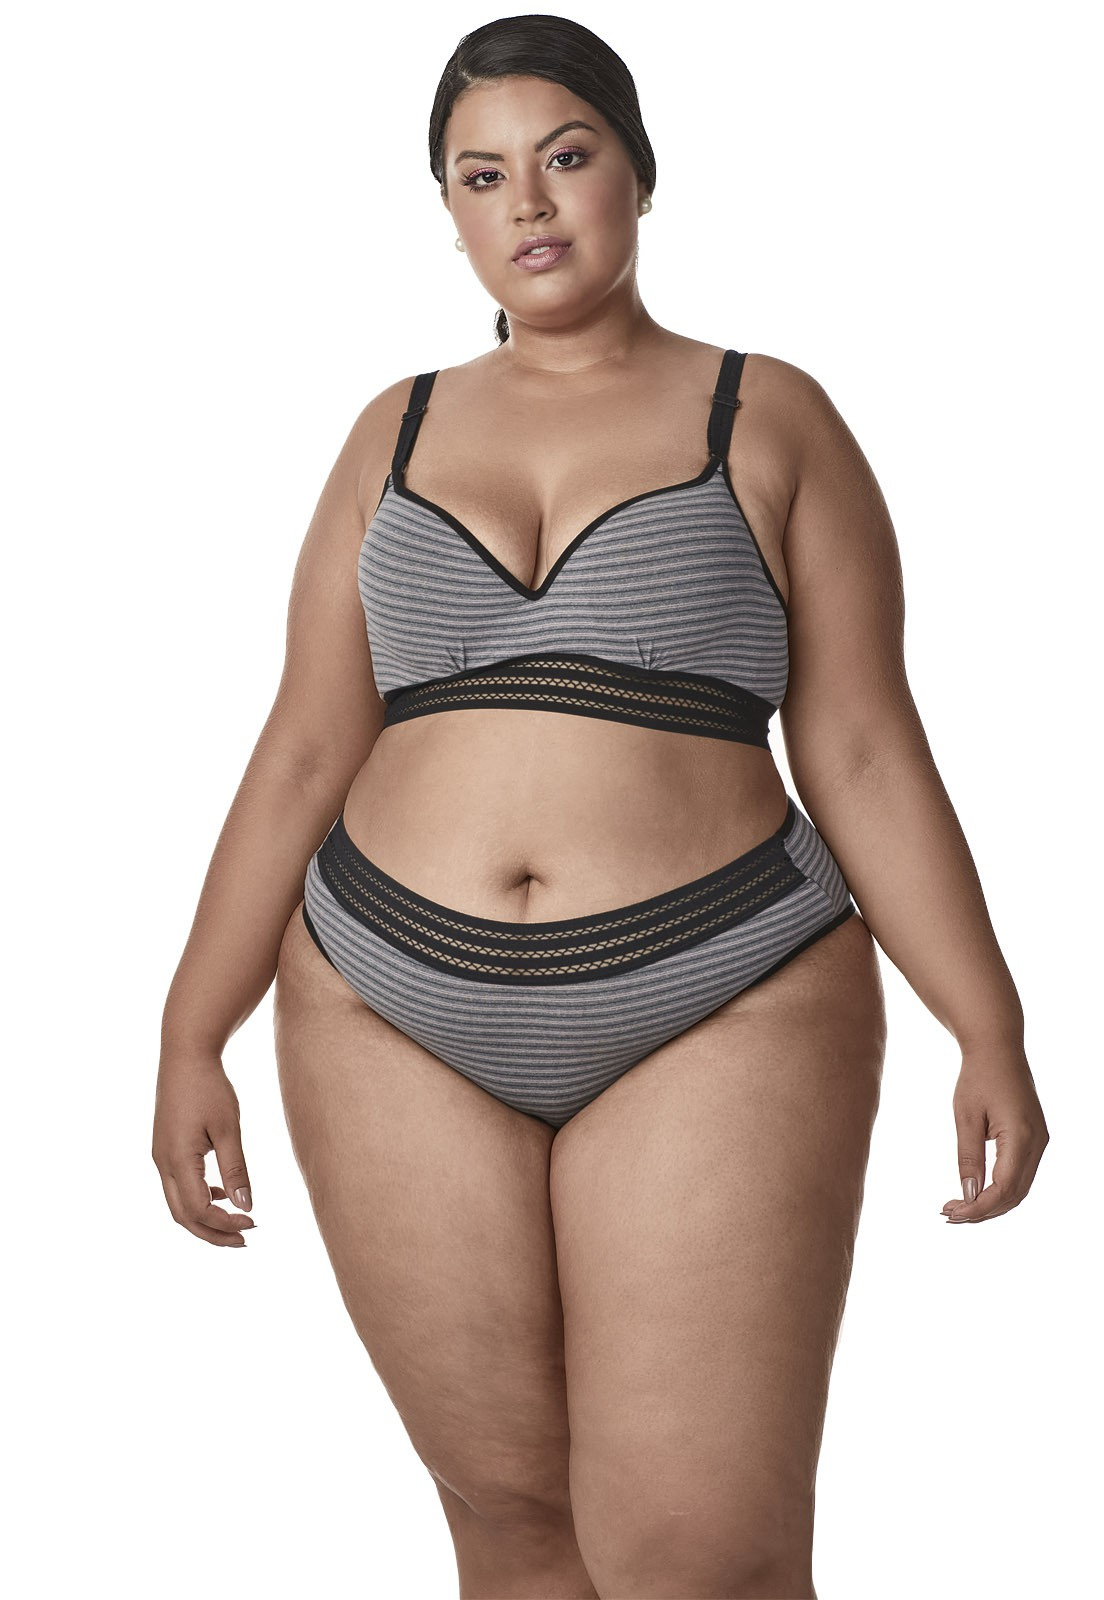 Calcinha basic cos largo Dukley Lingerie Plus Size - 156